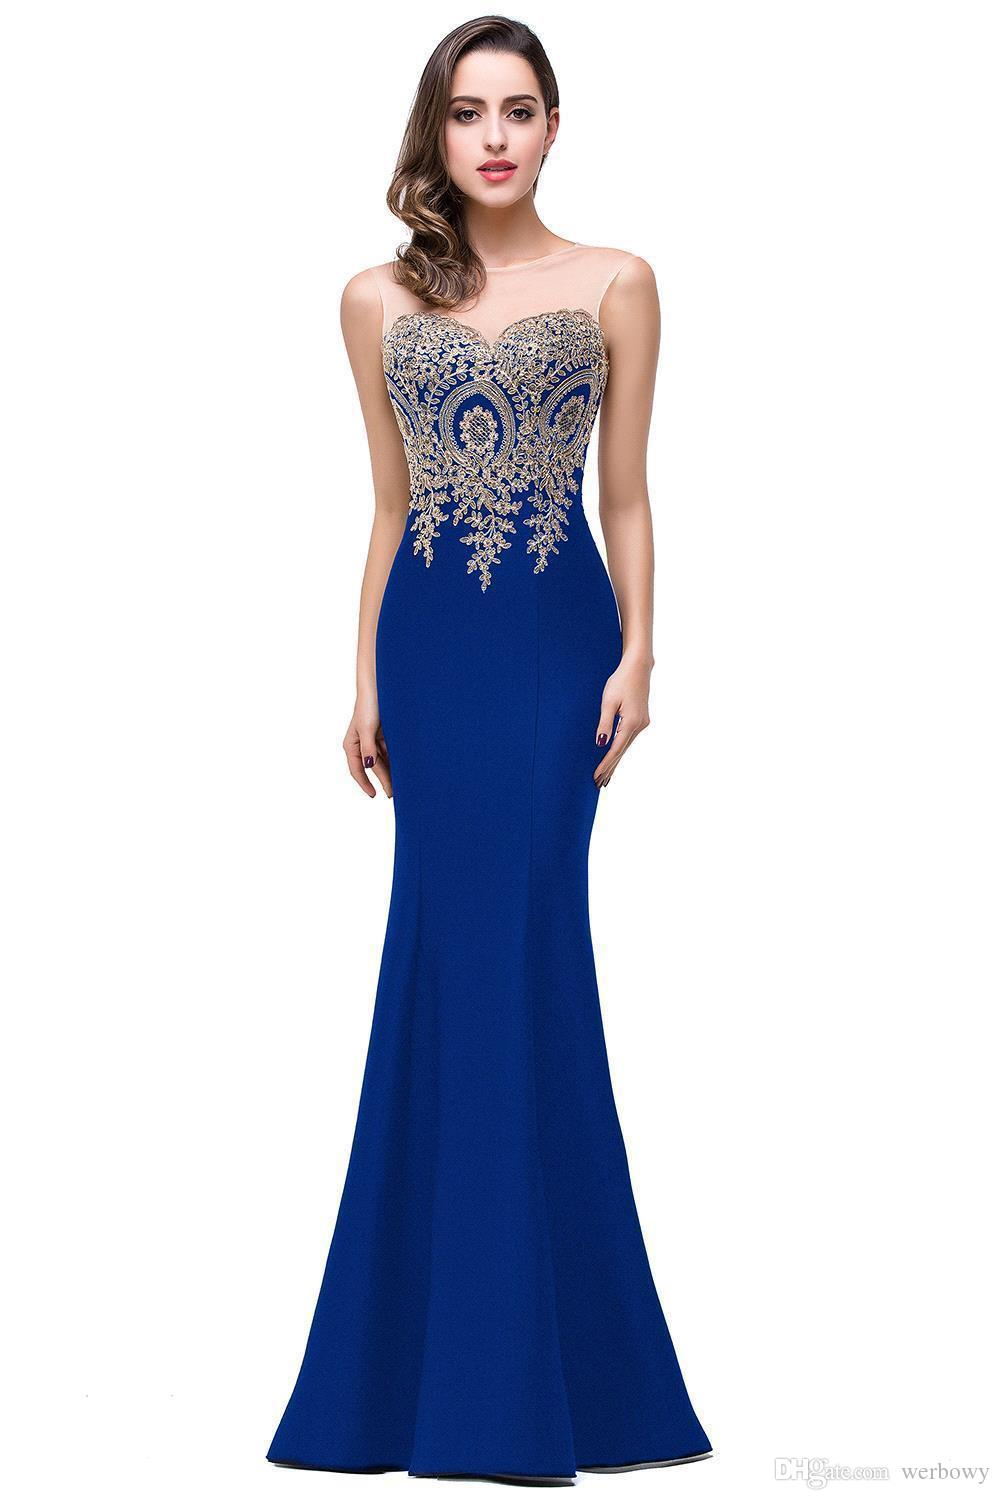 High Quality Burgundy Evening Dresses Tubeless Back Zipper Long Ball Prom Dresses Pineapple Flower Pearl Bead Party Dresses